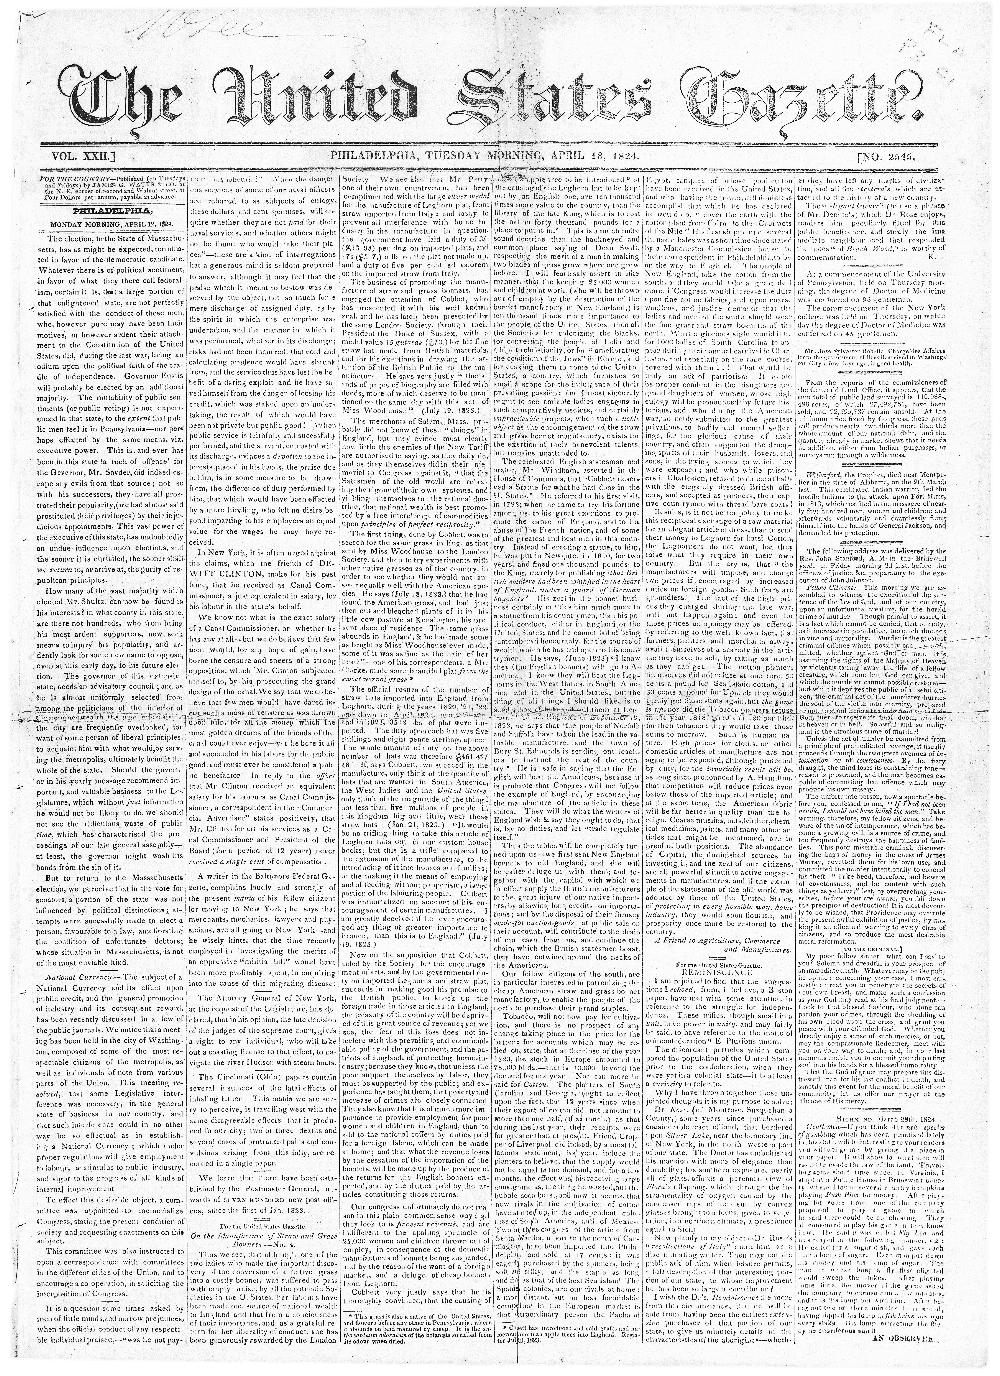 The United States gazette - page 1